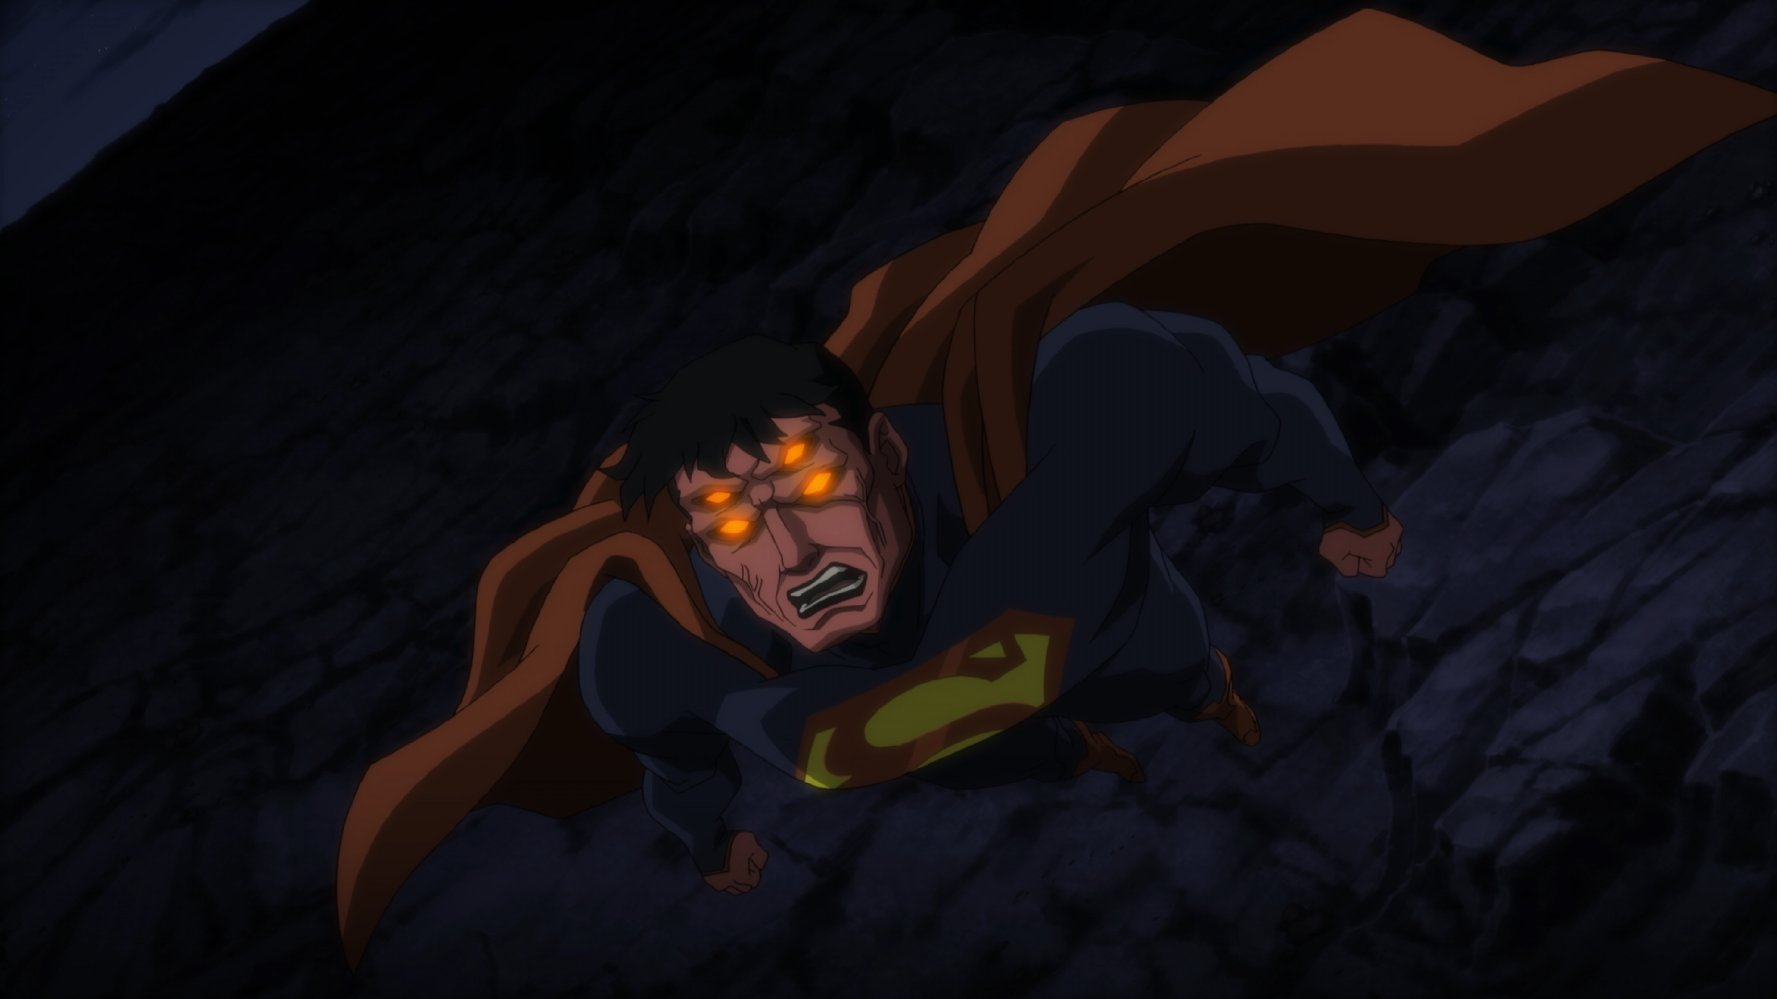 Justice League Vs Teen Titans 2016 Watch Online On 123Movies-6506